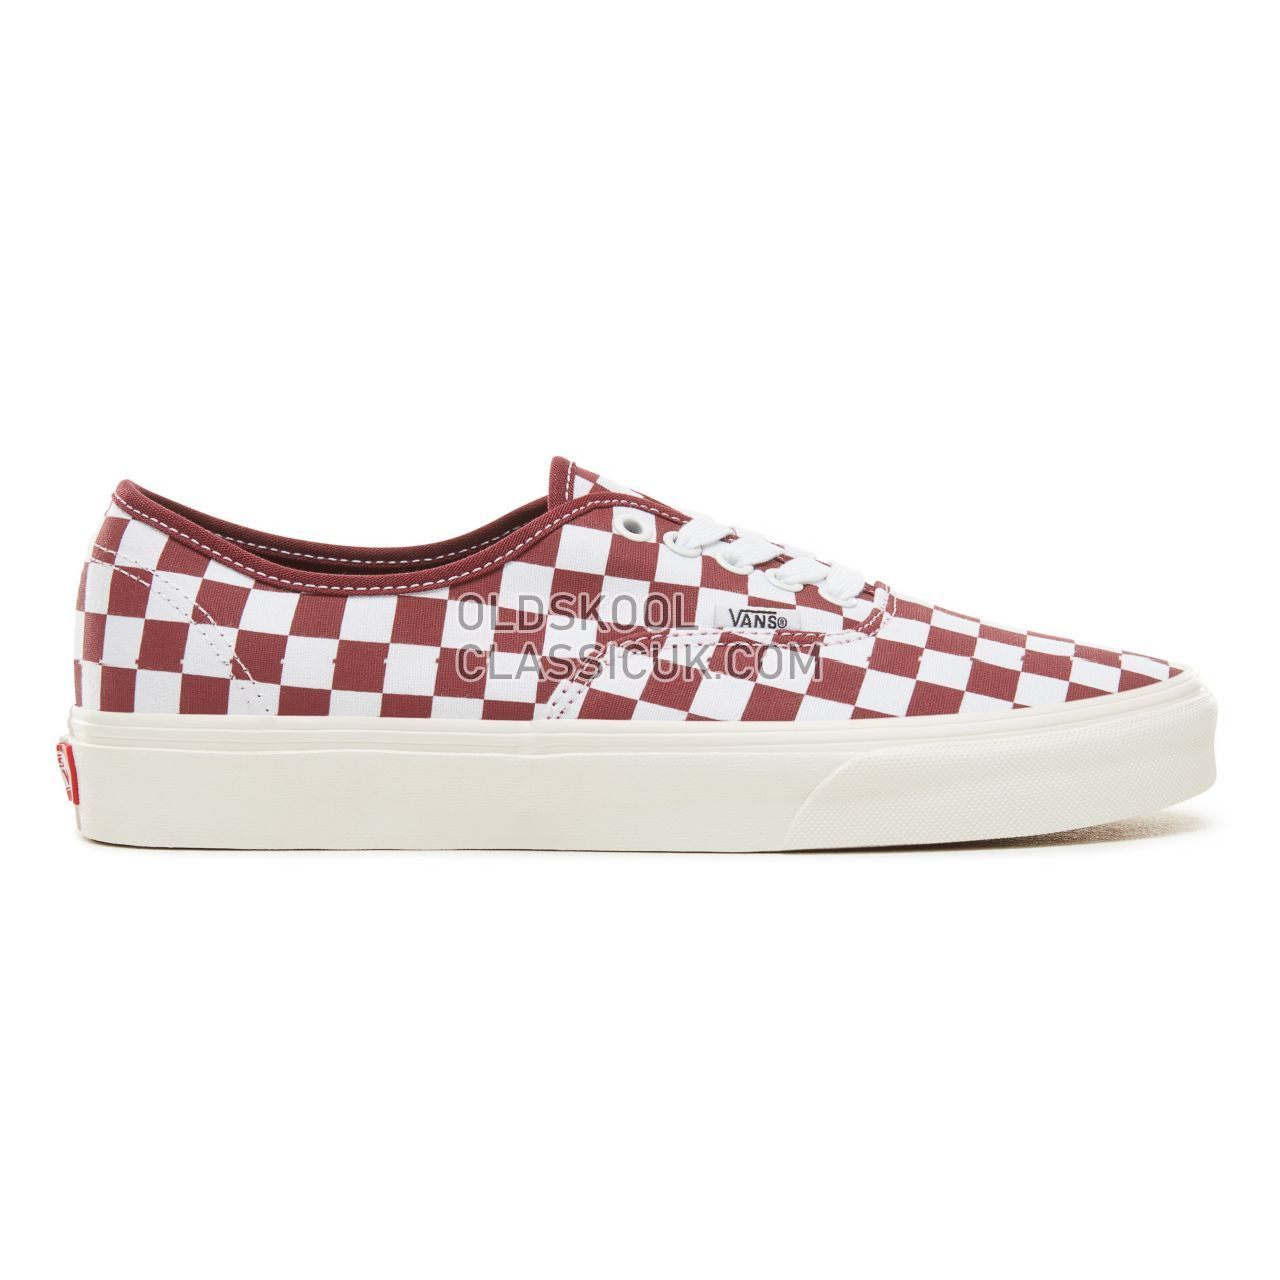 Vans Checkerboard Authentic Sneakers Mens (Checkerboard) Port Royale/Marshmallow VA38EMU54 Shoes